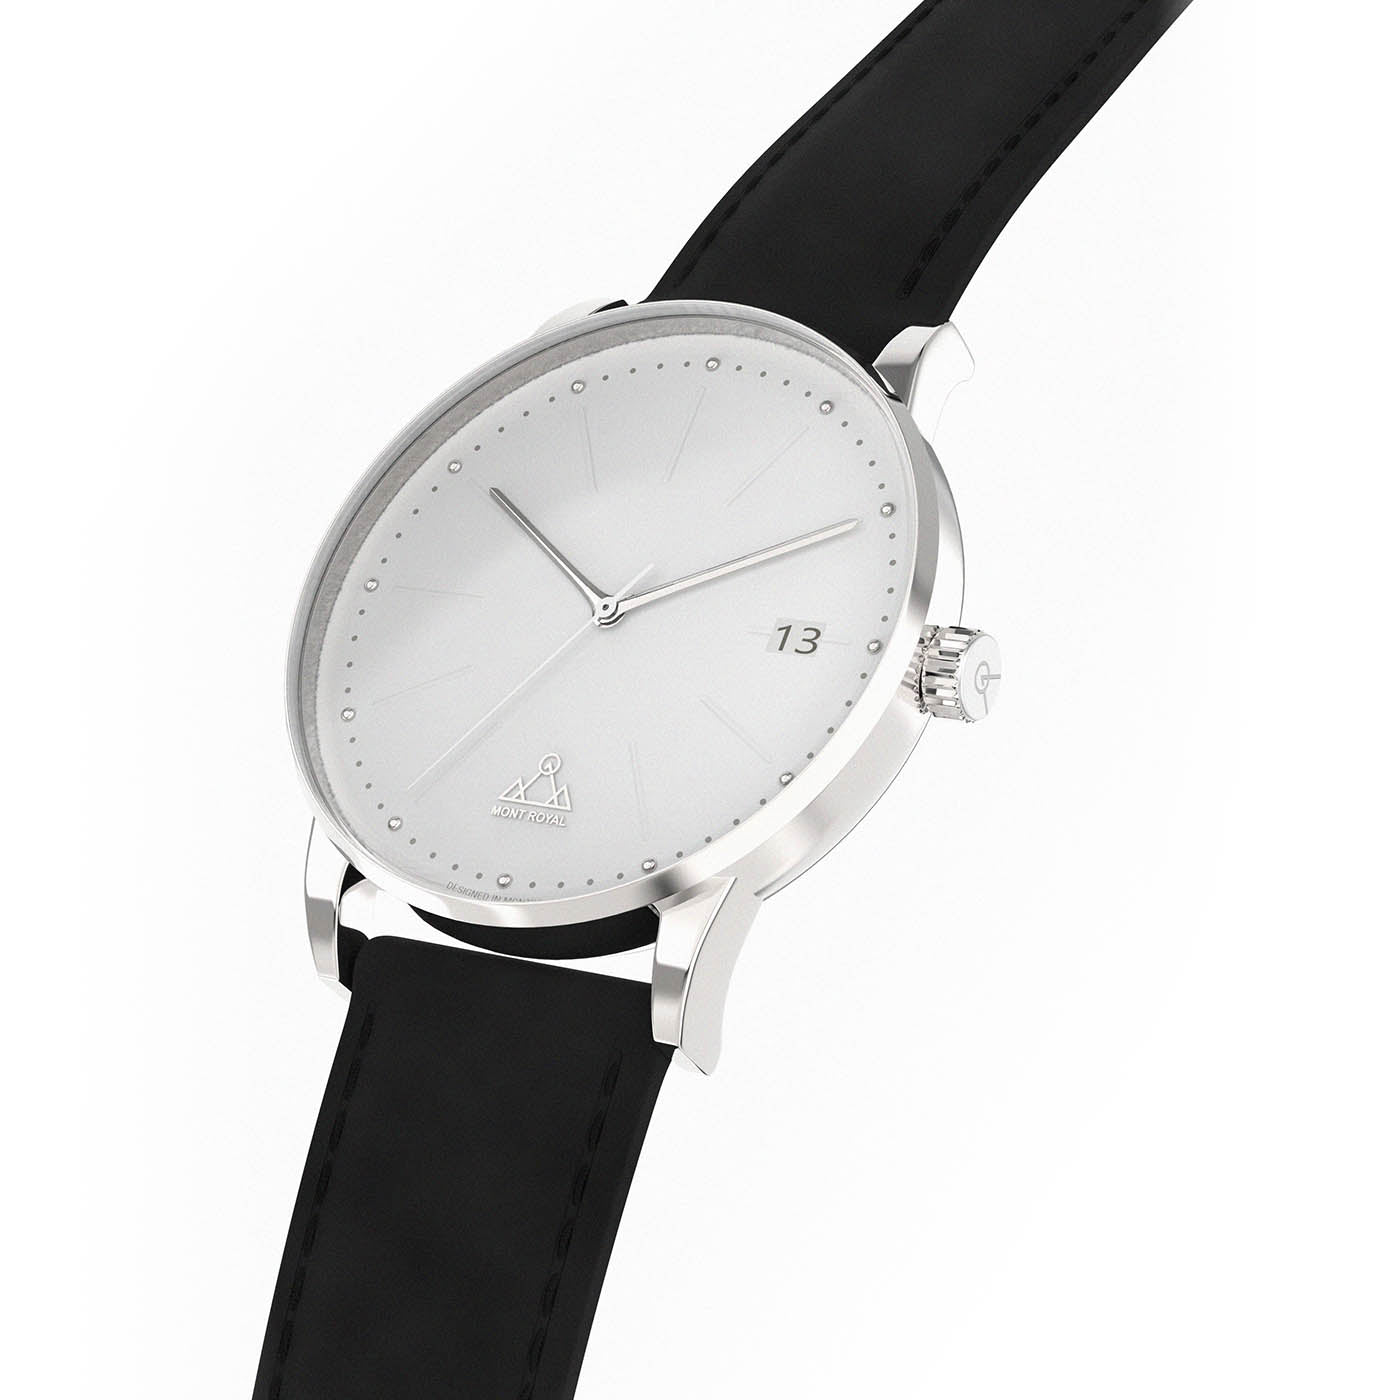 White + Black Leather Classic Watch